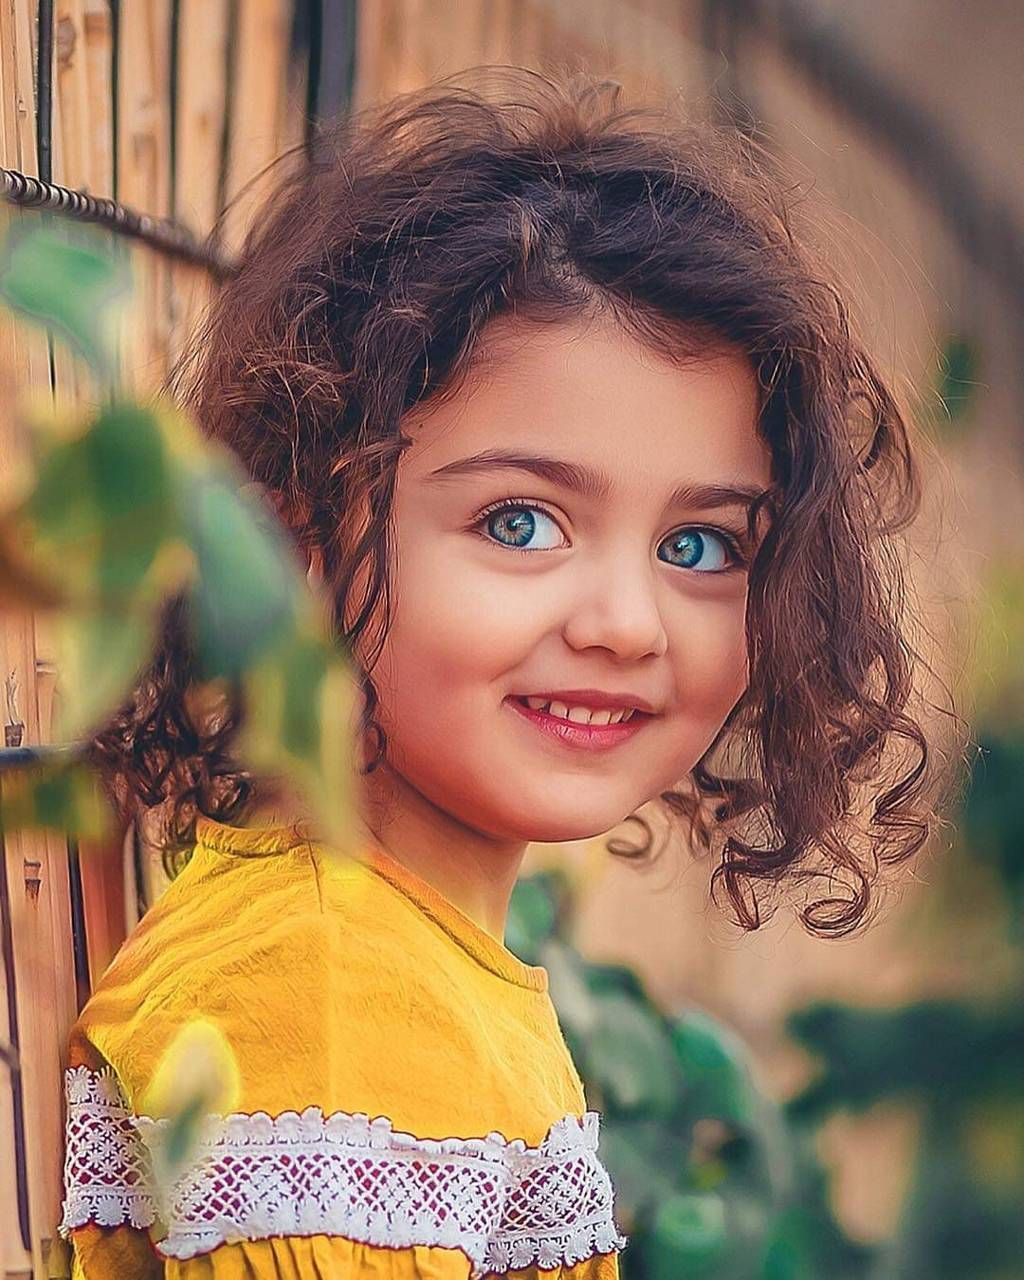 Download Baby Wallpaper By Nawz120 C8 Free On Zedge Now Browse Millions Of Popular Cute Baby Wa Cute Baby Wallpaper Baby Girl Wallpaper Baby Girl Images